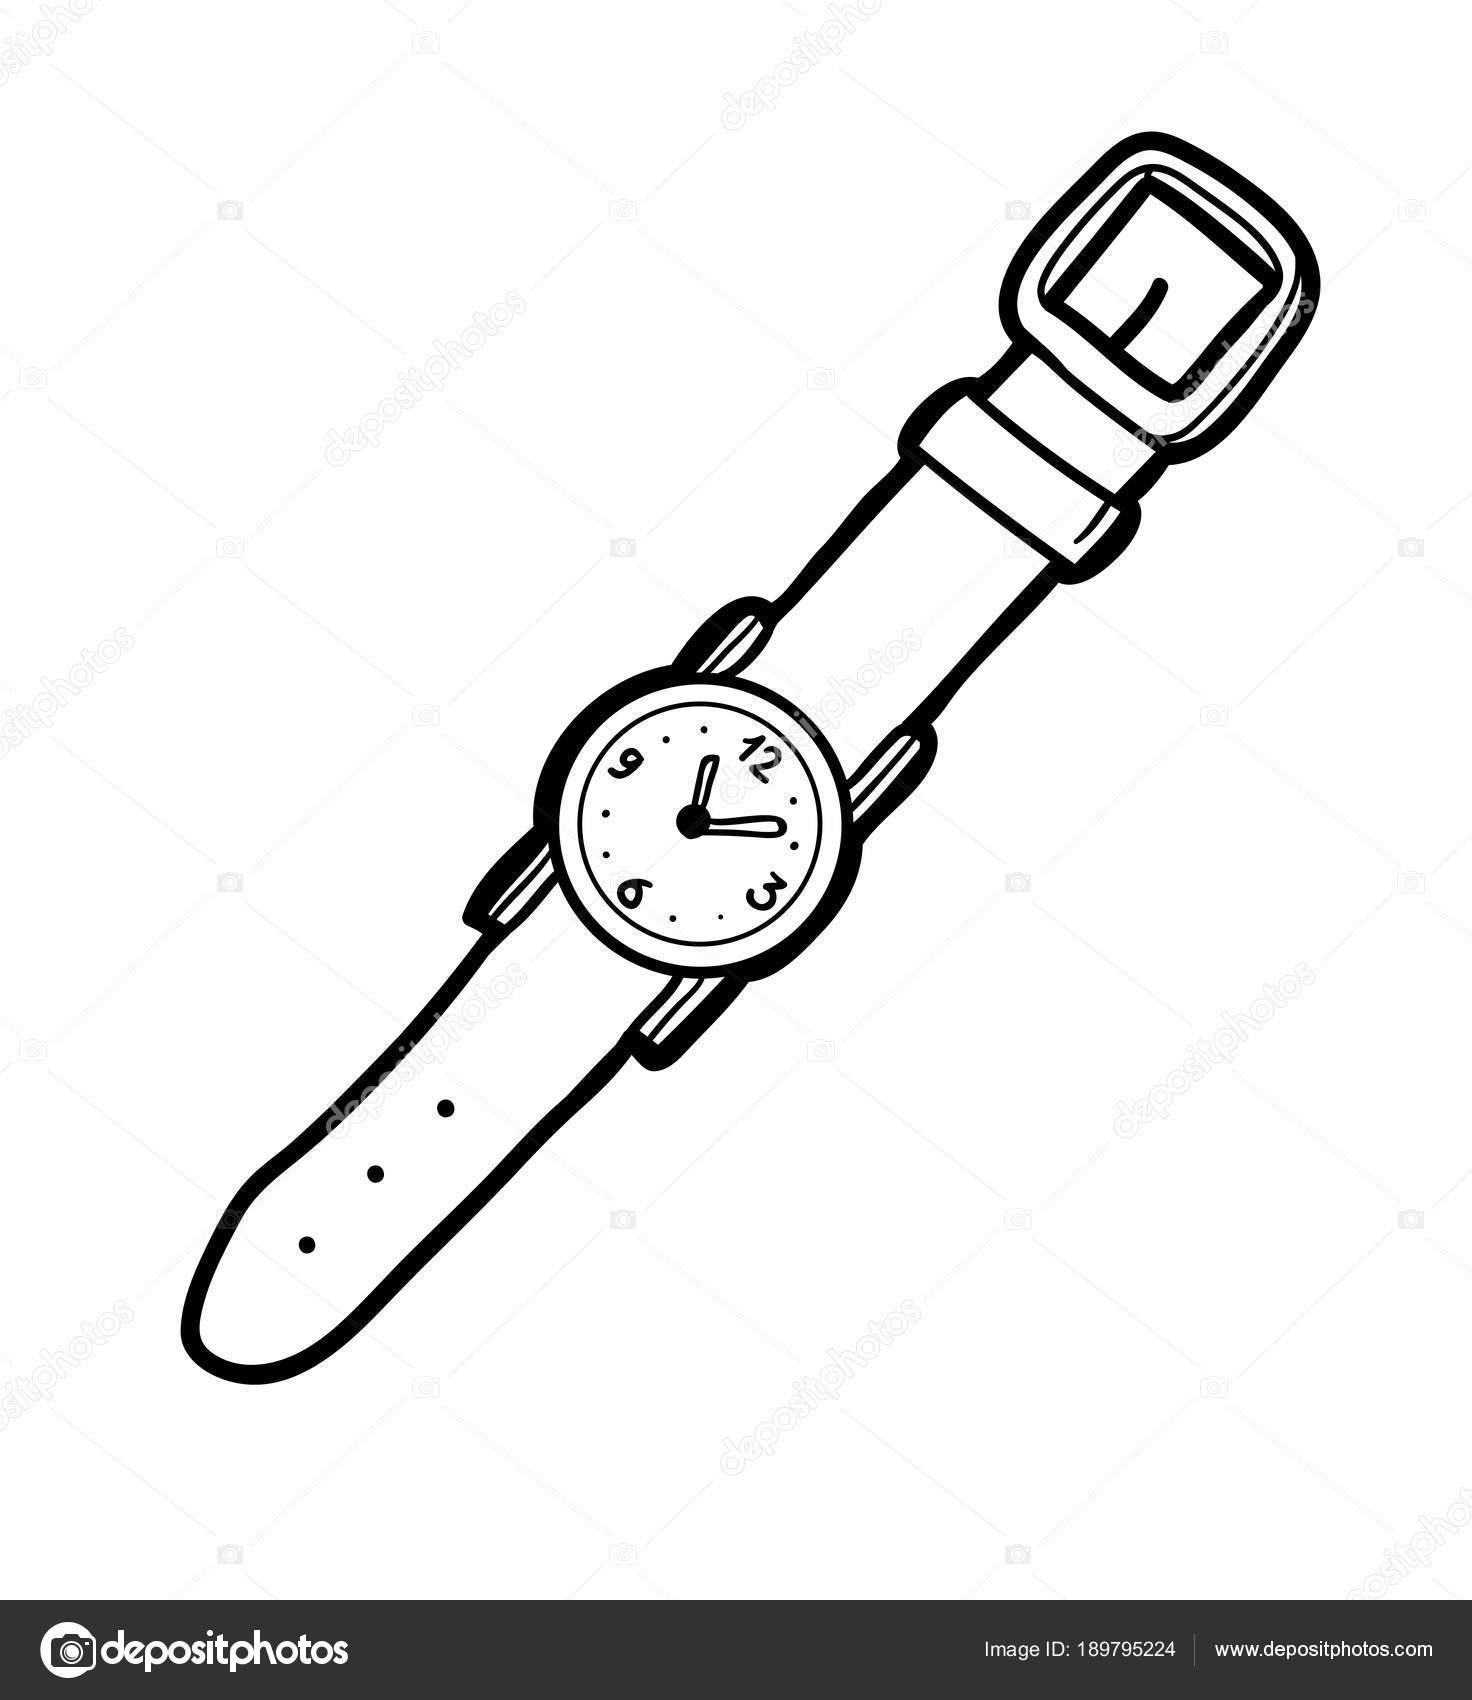 wrist coloring pages - photo#4